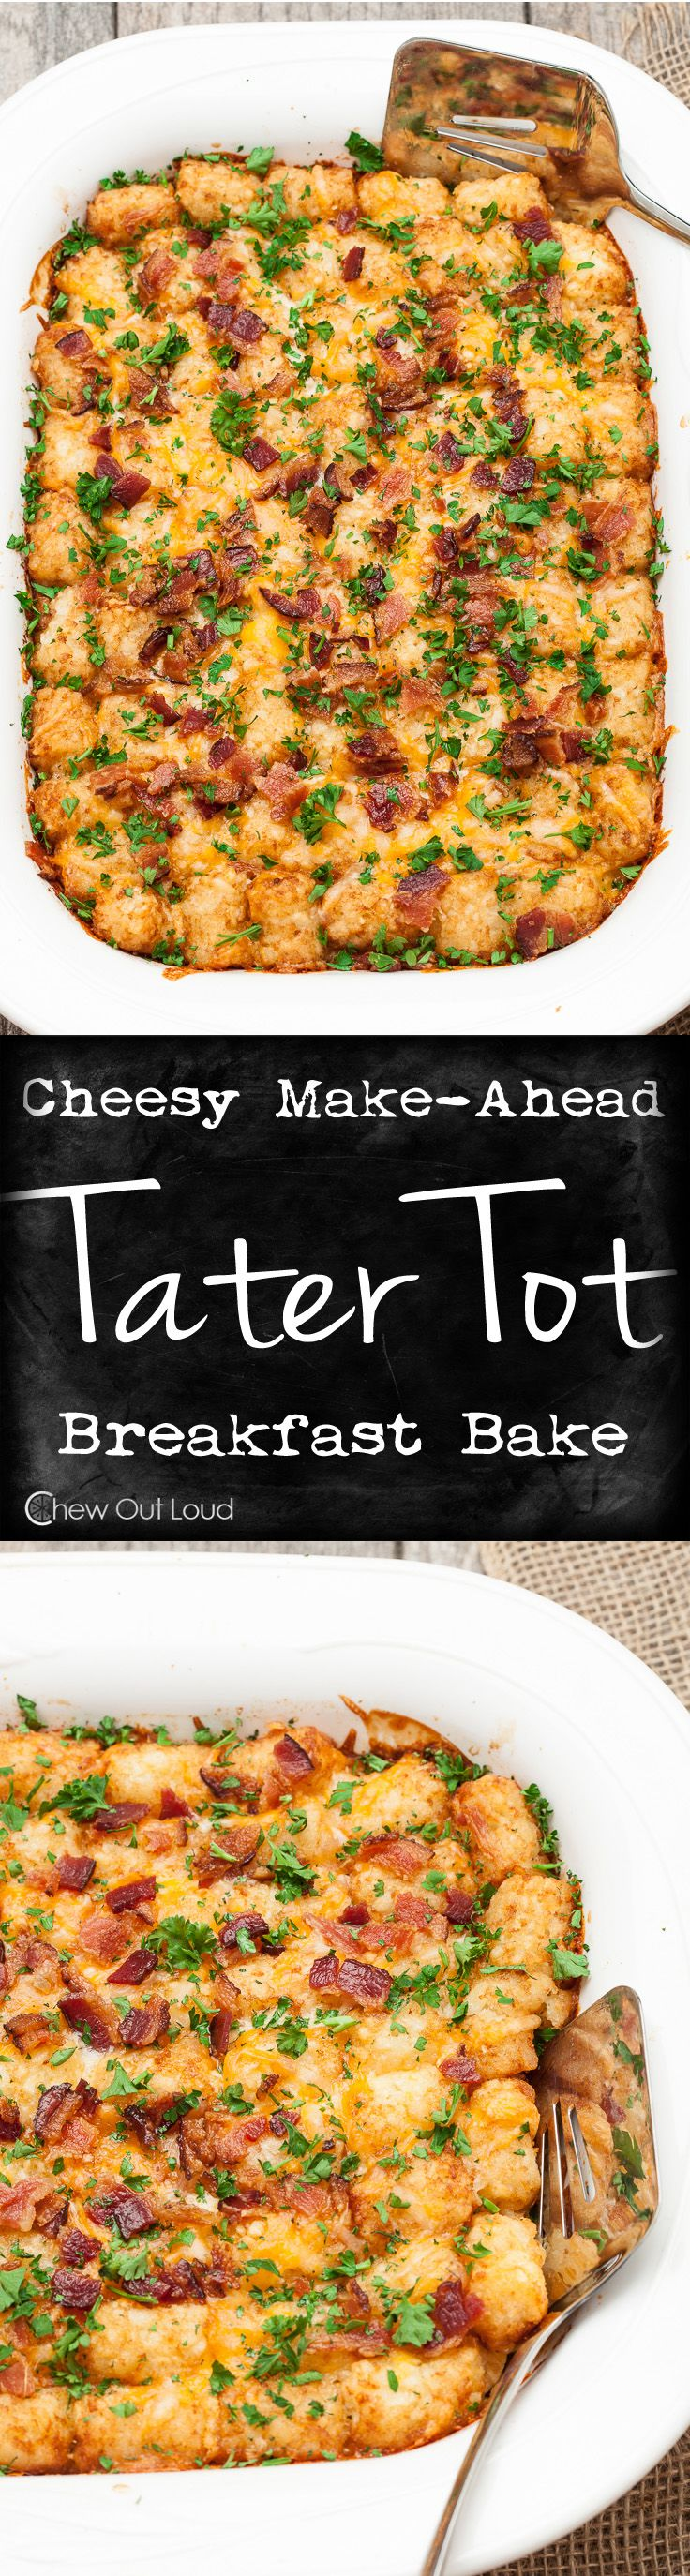 Cheesy Tater Tot Breakfast Bake - Just a handful of ingredients, make-ahead the night before, and delicious the next morning! Total crowd pleaser! #recipe #brunch #casserole